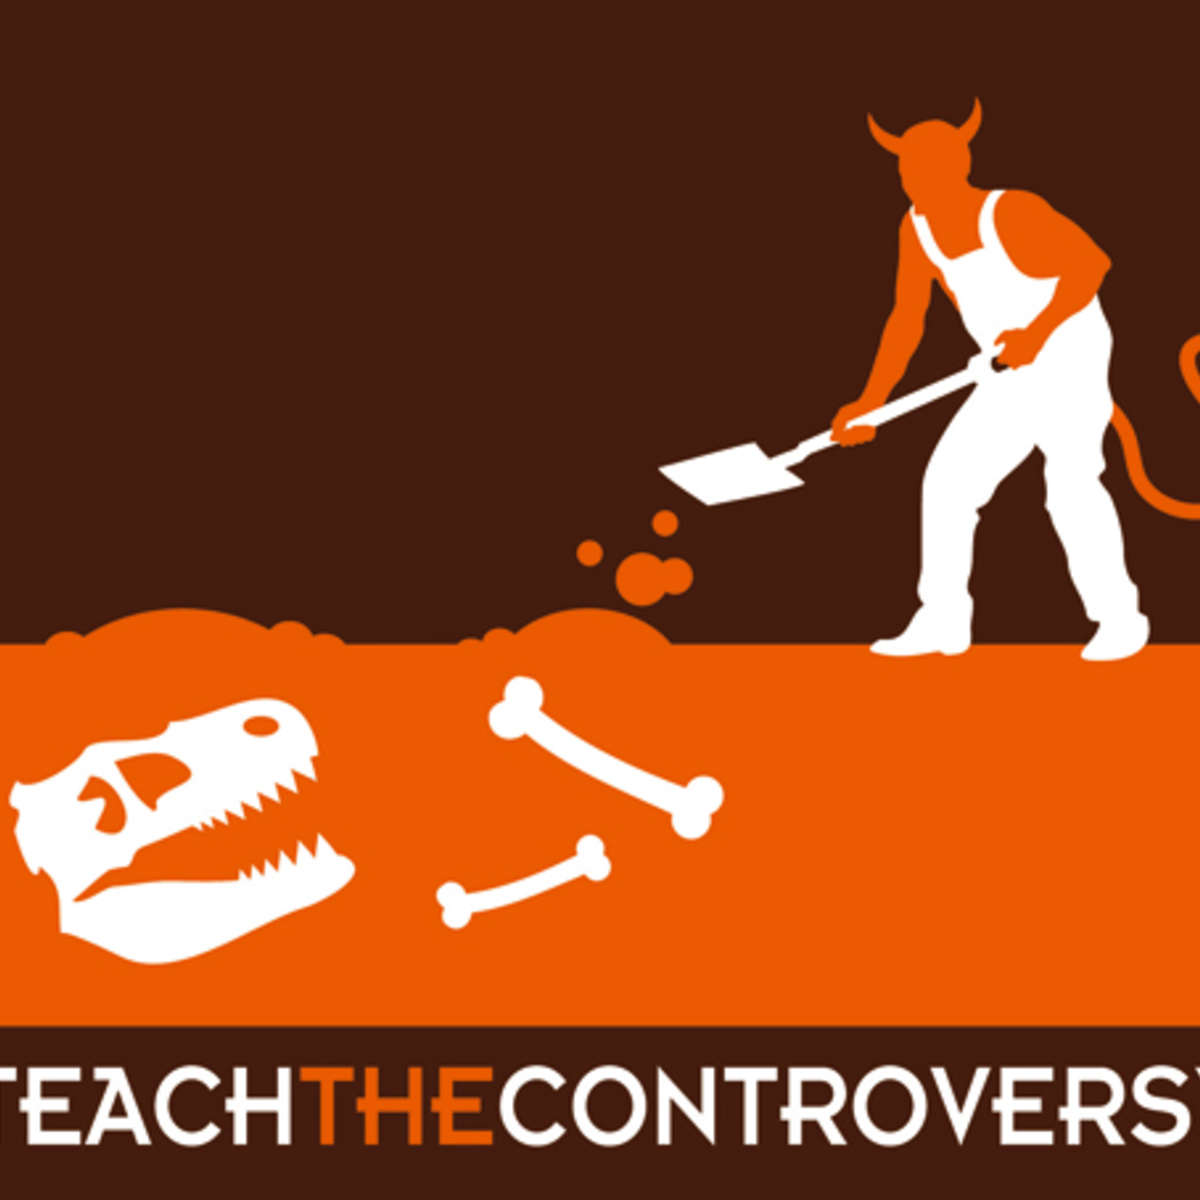 teachthecontroversy_devil_0.jpg